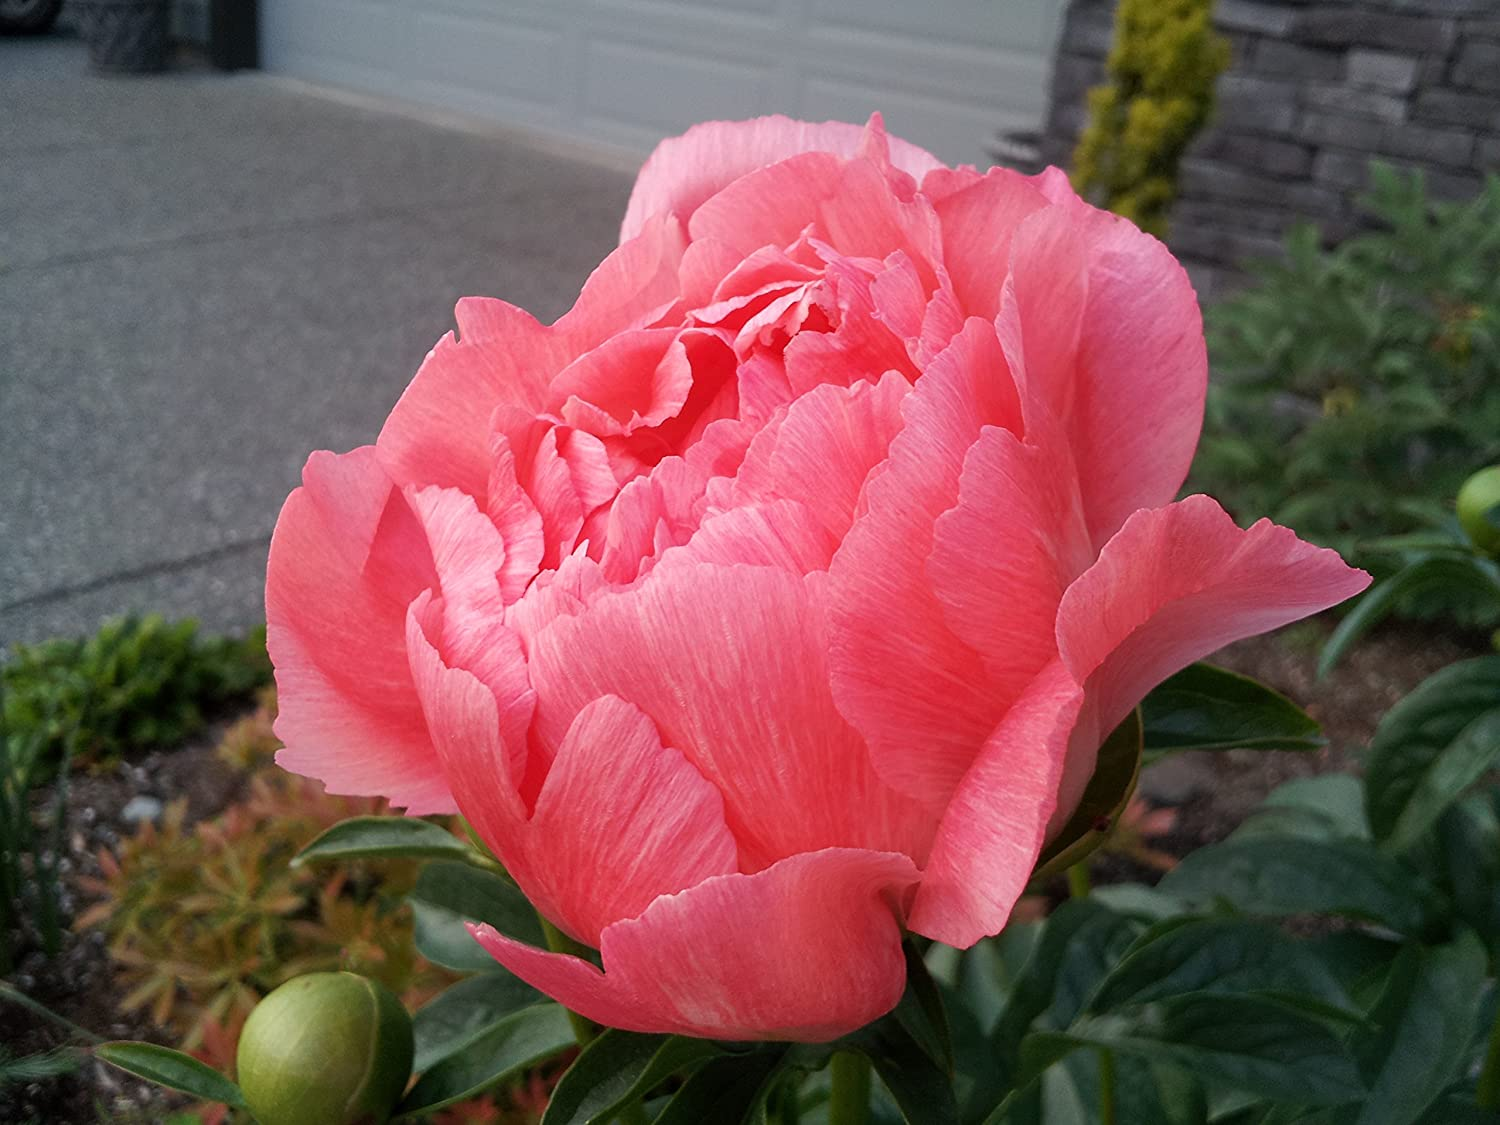 Coral Sunset Peony: description, photo 96